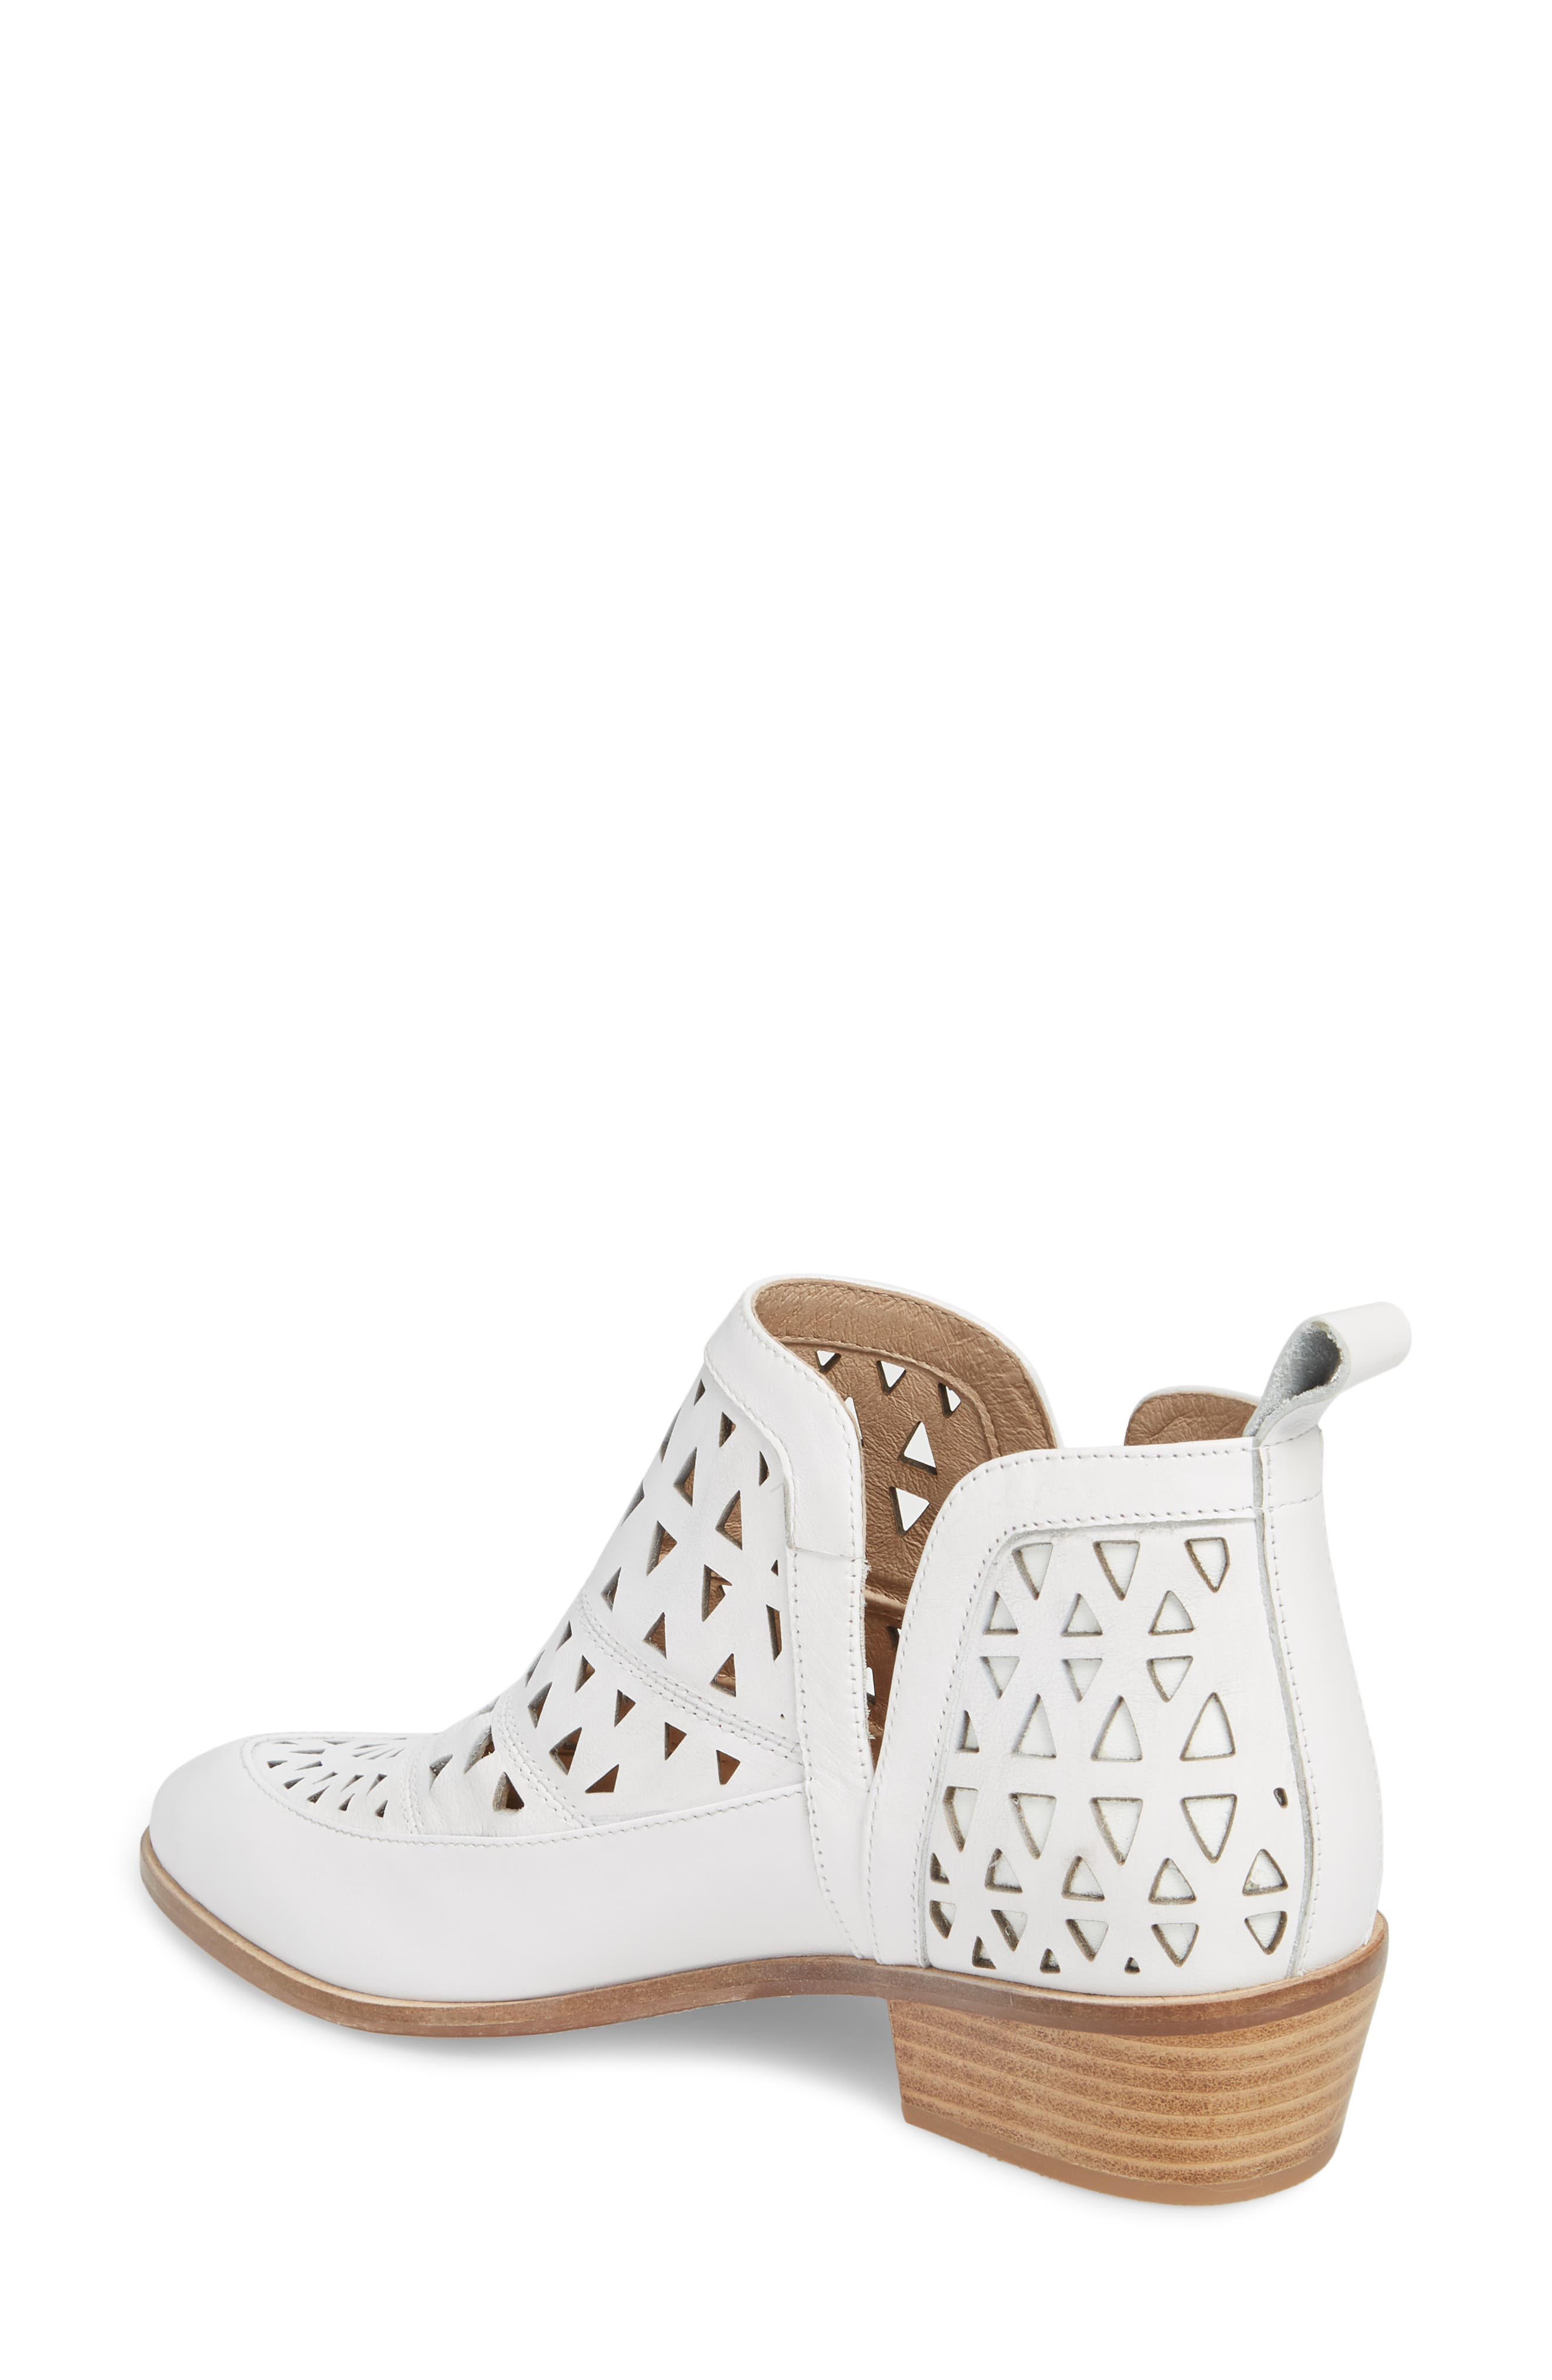 Catherine Cutout Bootie,                             Alternate thumbnail 2, color,                             WHITE LEATHER